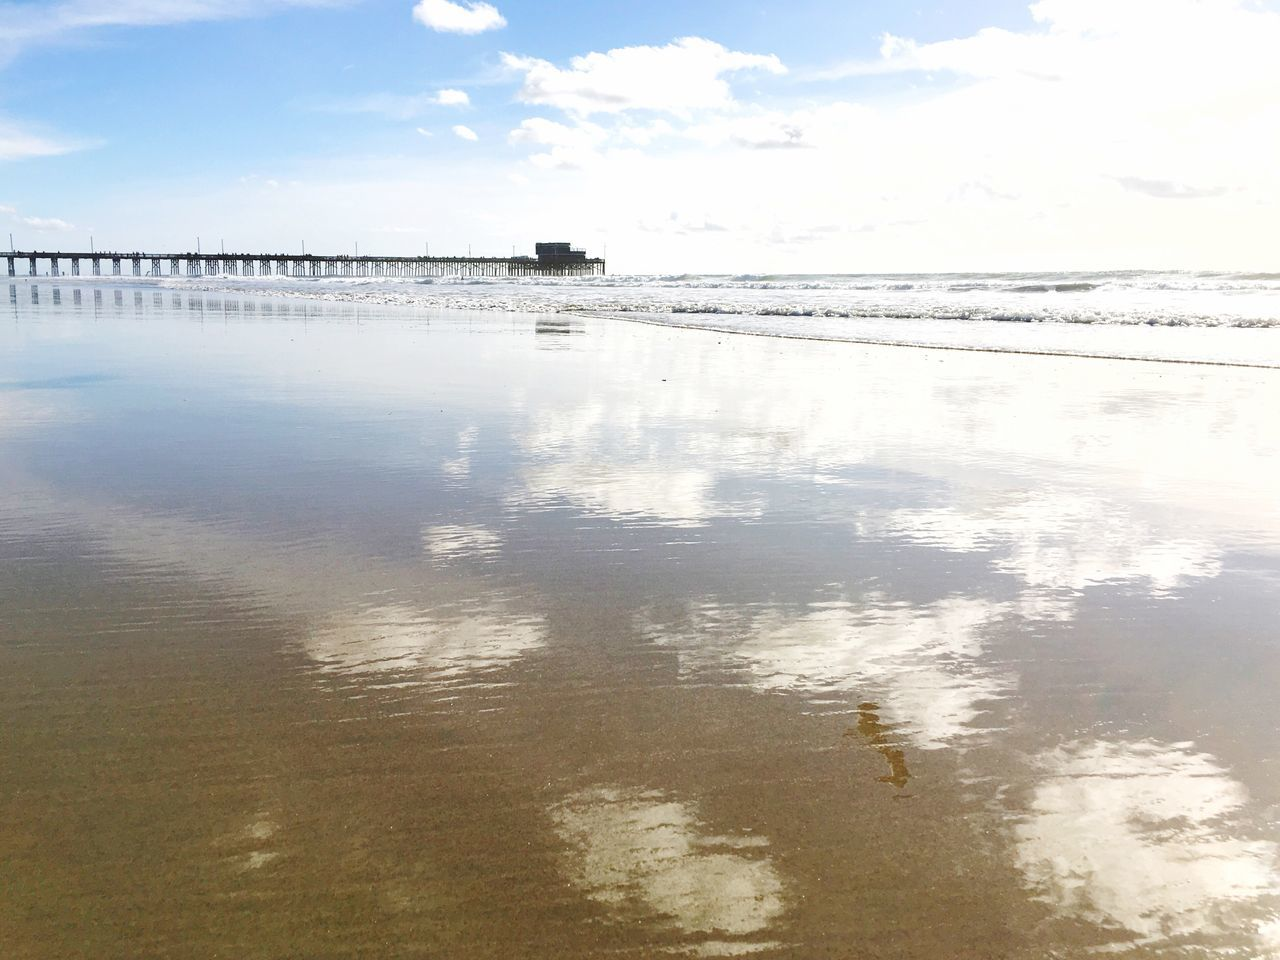 Cloud reflections Ocean View Clouds And Sky Water Reflection Nature Sky Sea Beauty In Nature Tranquil Scene Tranquility No People Outdoors Waterfront Beach Horizon Over Water Architecture Low Tide Revelations Reflections In The Water Rippled Water